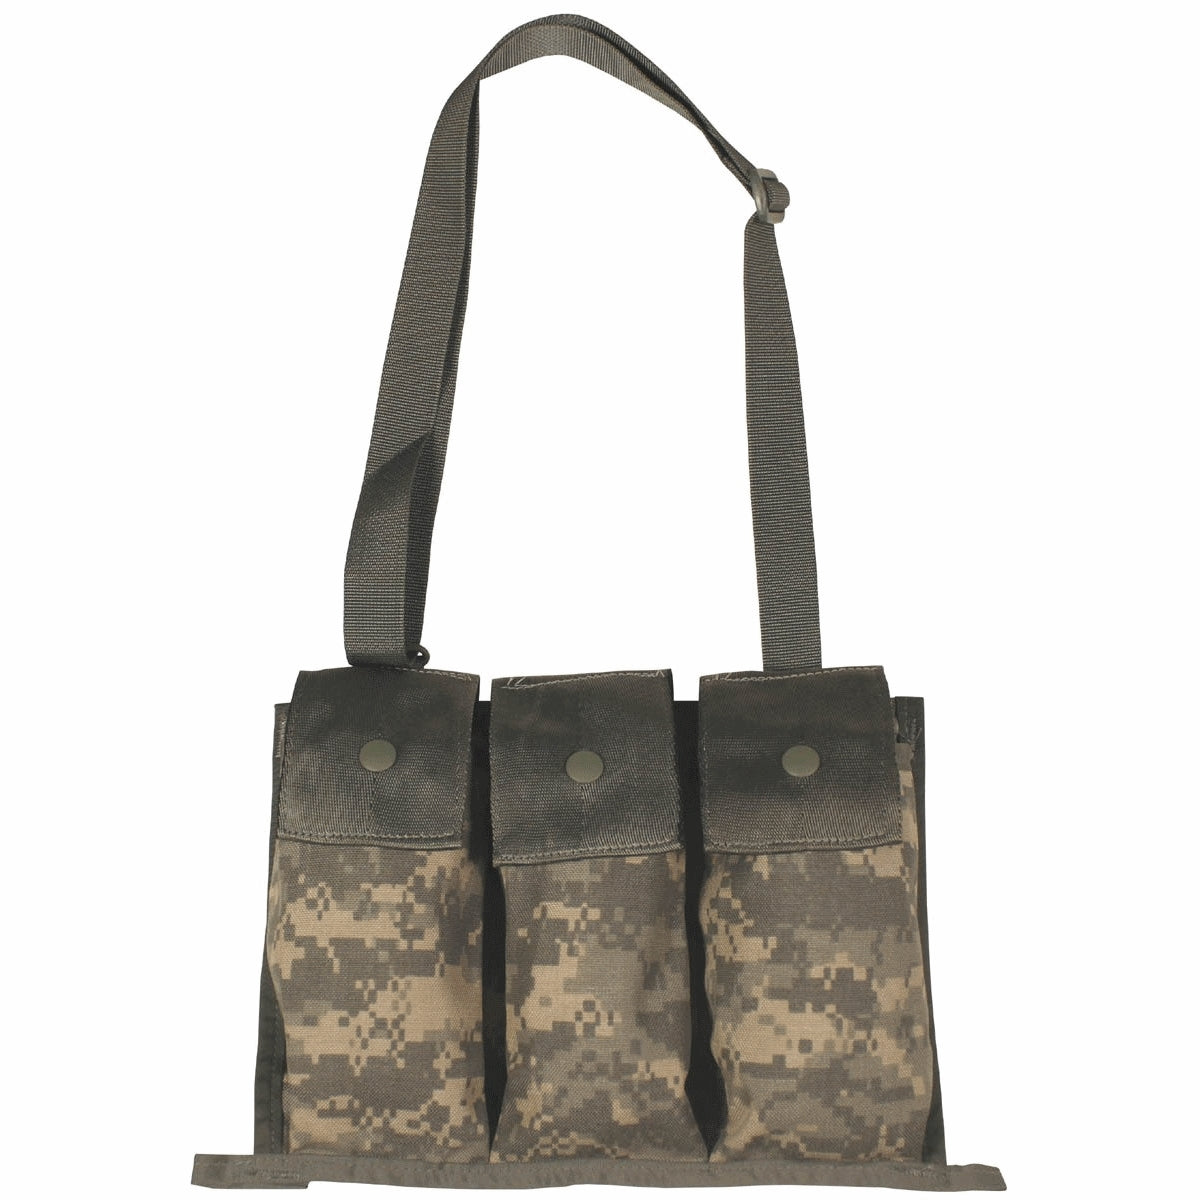 American US army surplus triple AT digital ammo pouch bandana